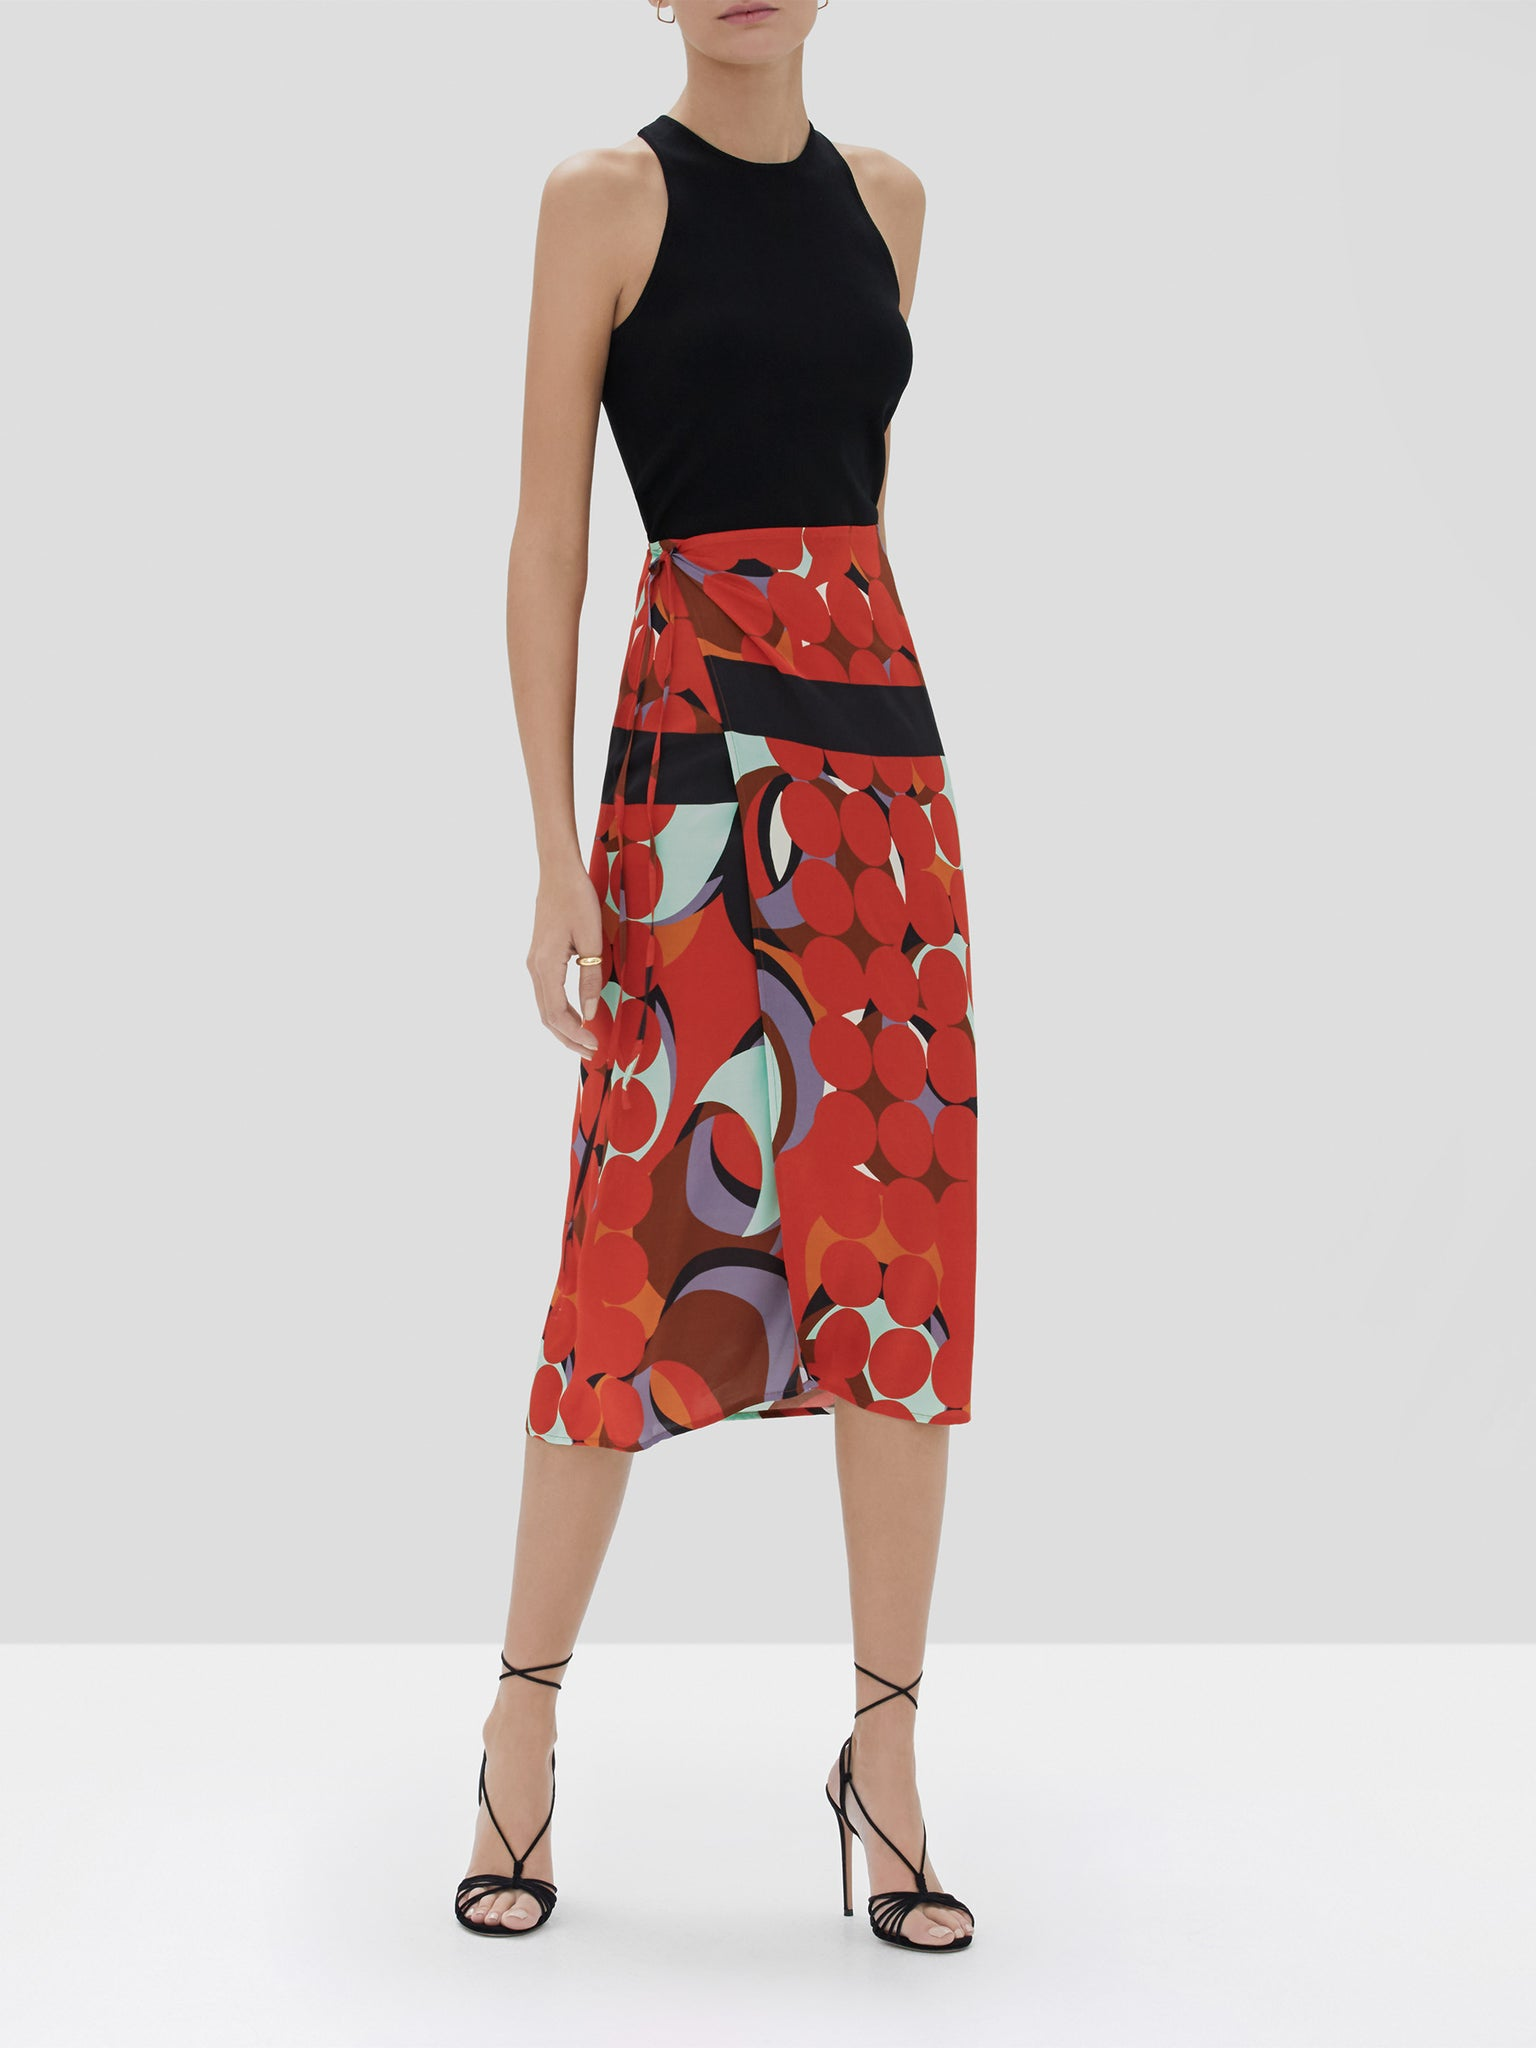 Alexis Quora Skirt in Red Eclipse from the Fall Winter 2019 Ready To Wear Collection